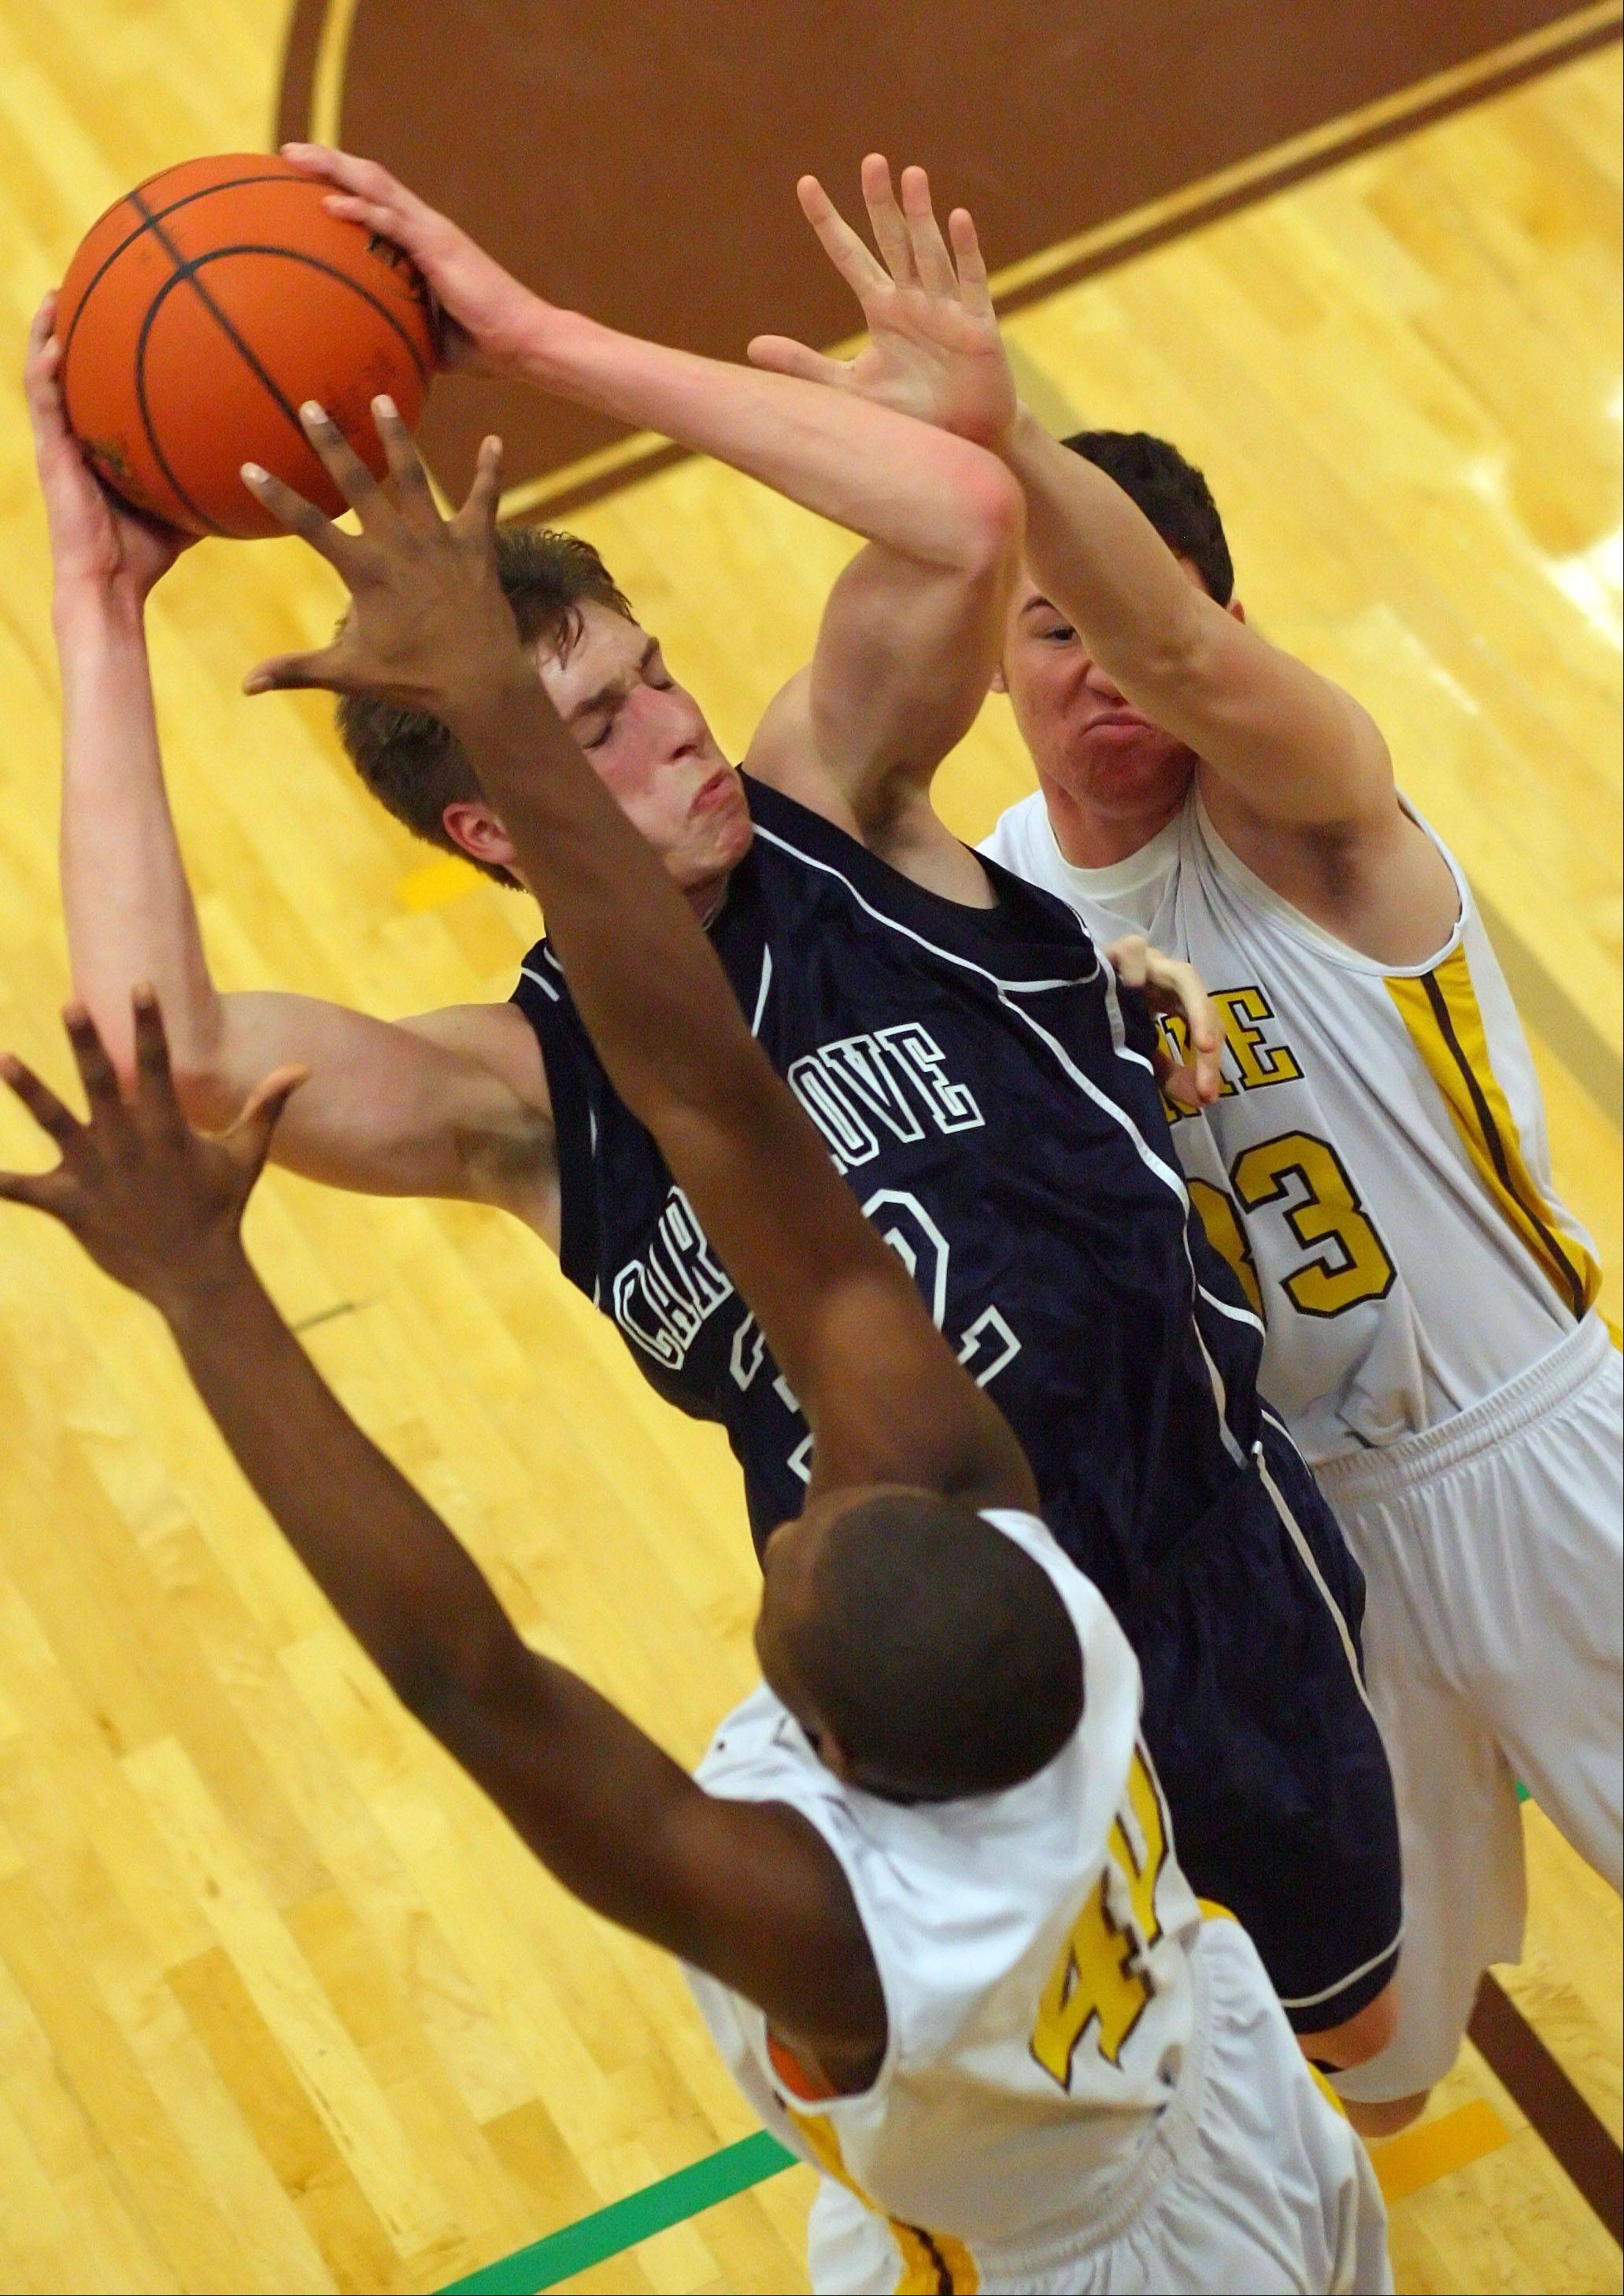 Cary-Grove's Dean Lee, center, drives on Carmel's Chris Duff, left, and Matt Kelly.